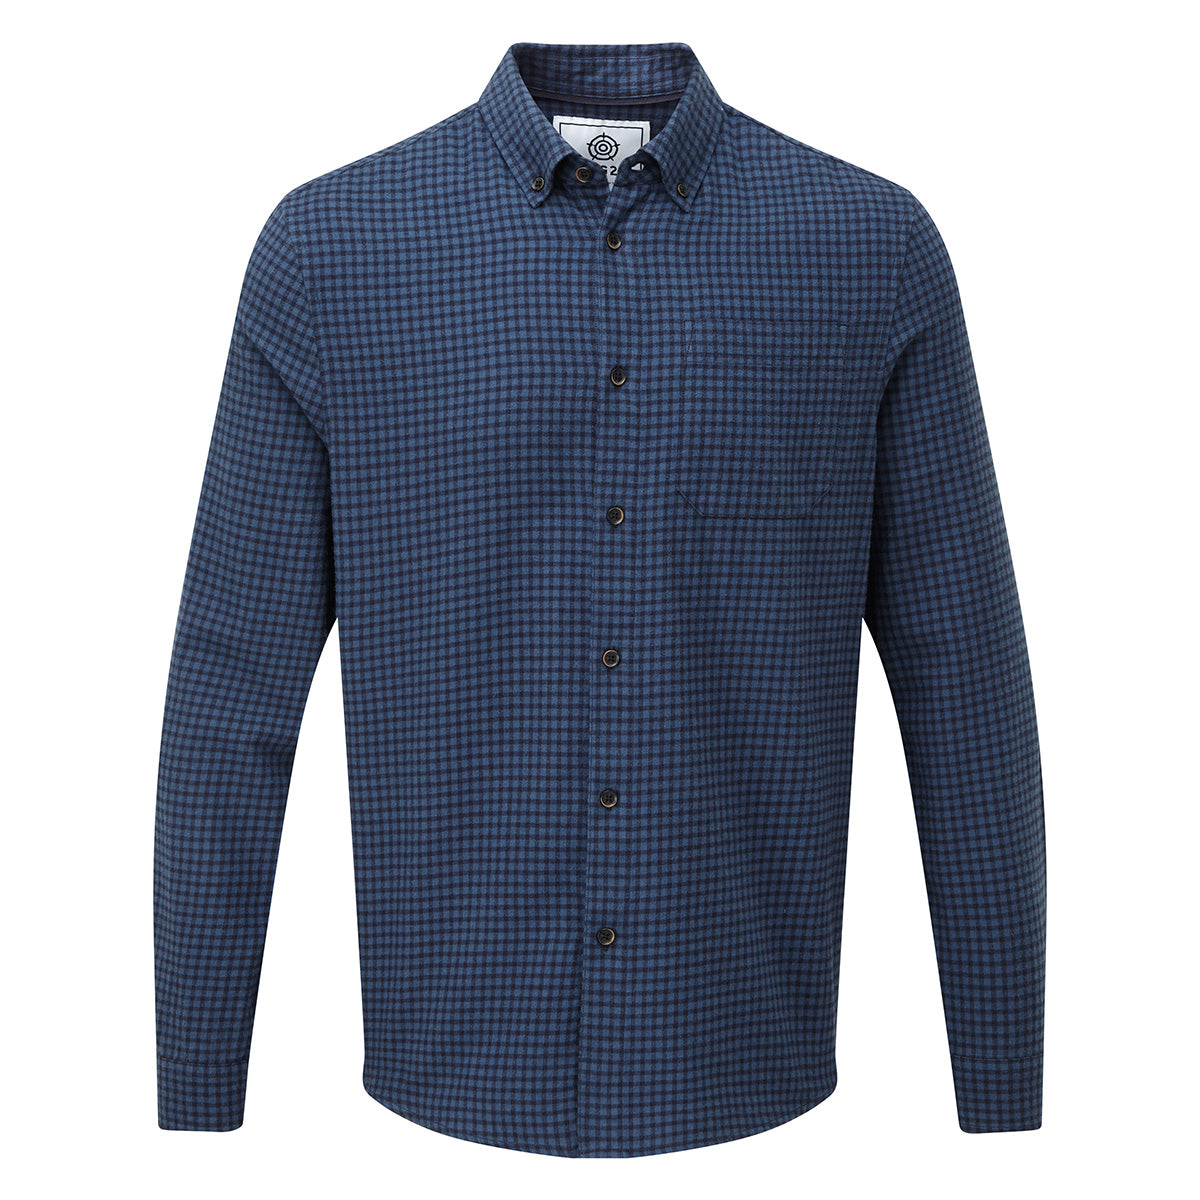 Theo Mens Long Sleeve Small Flannel Check Shirt - Navy Check image 4